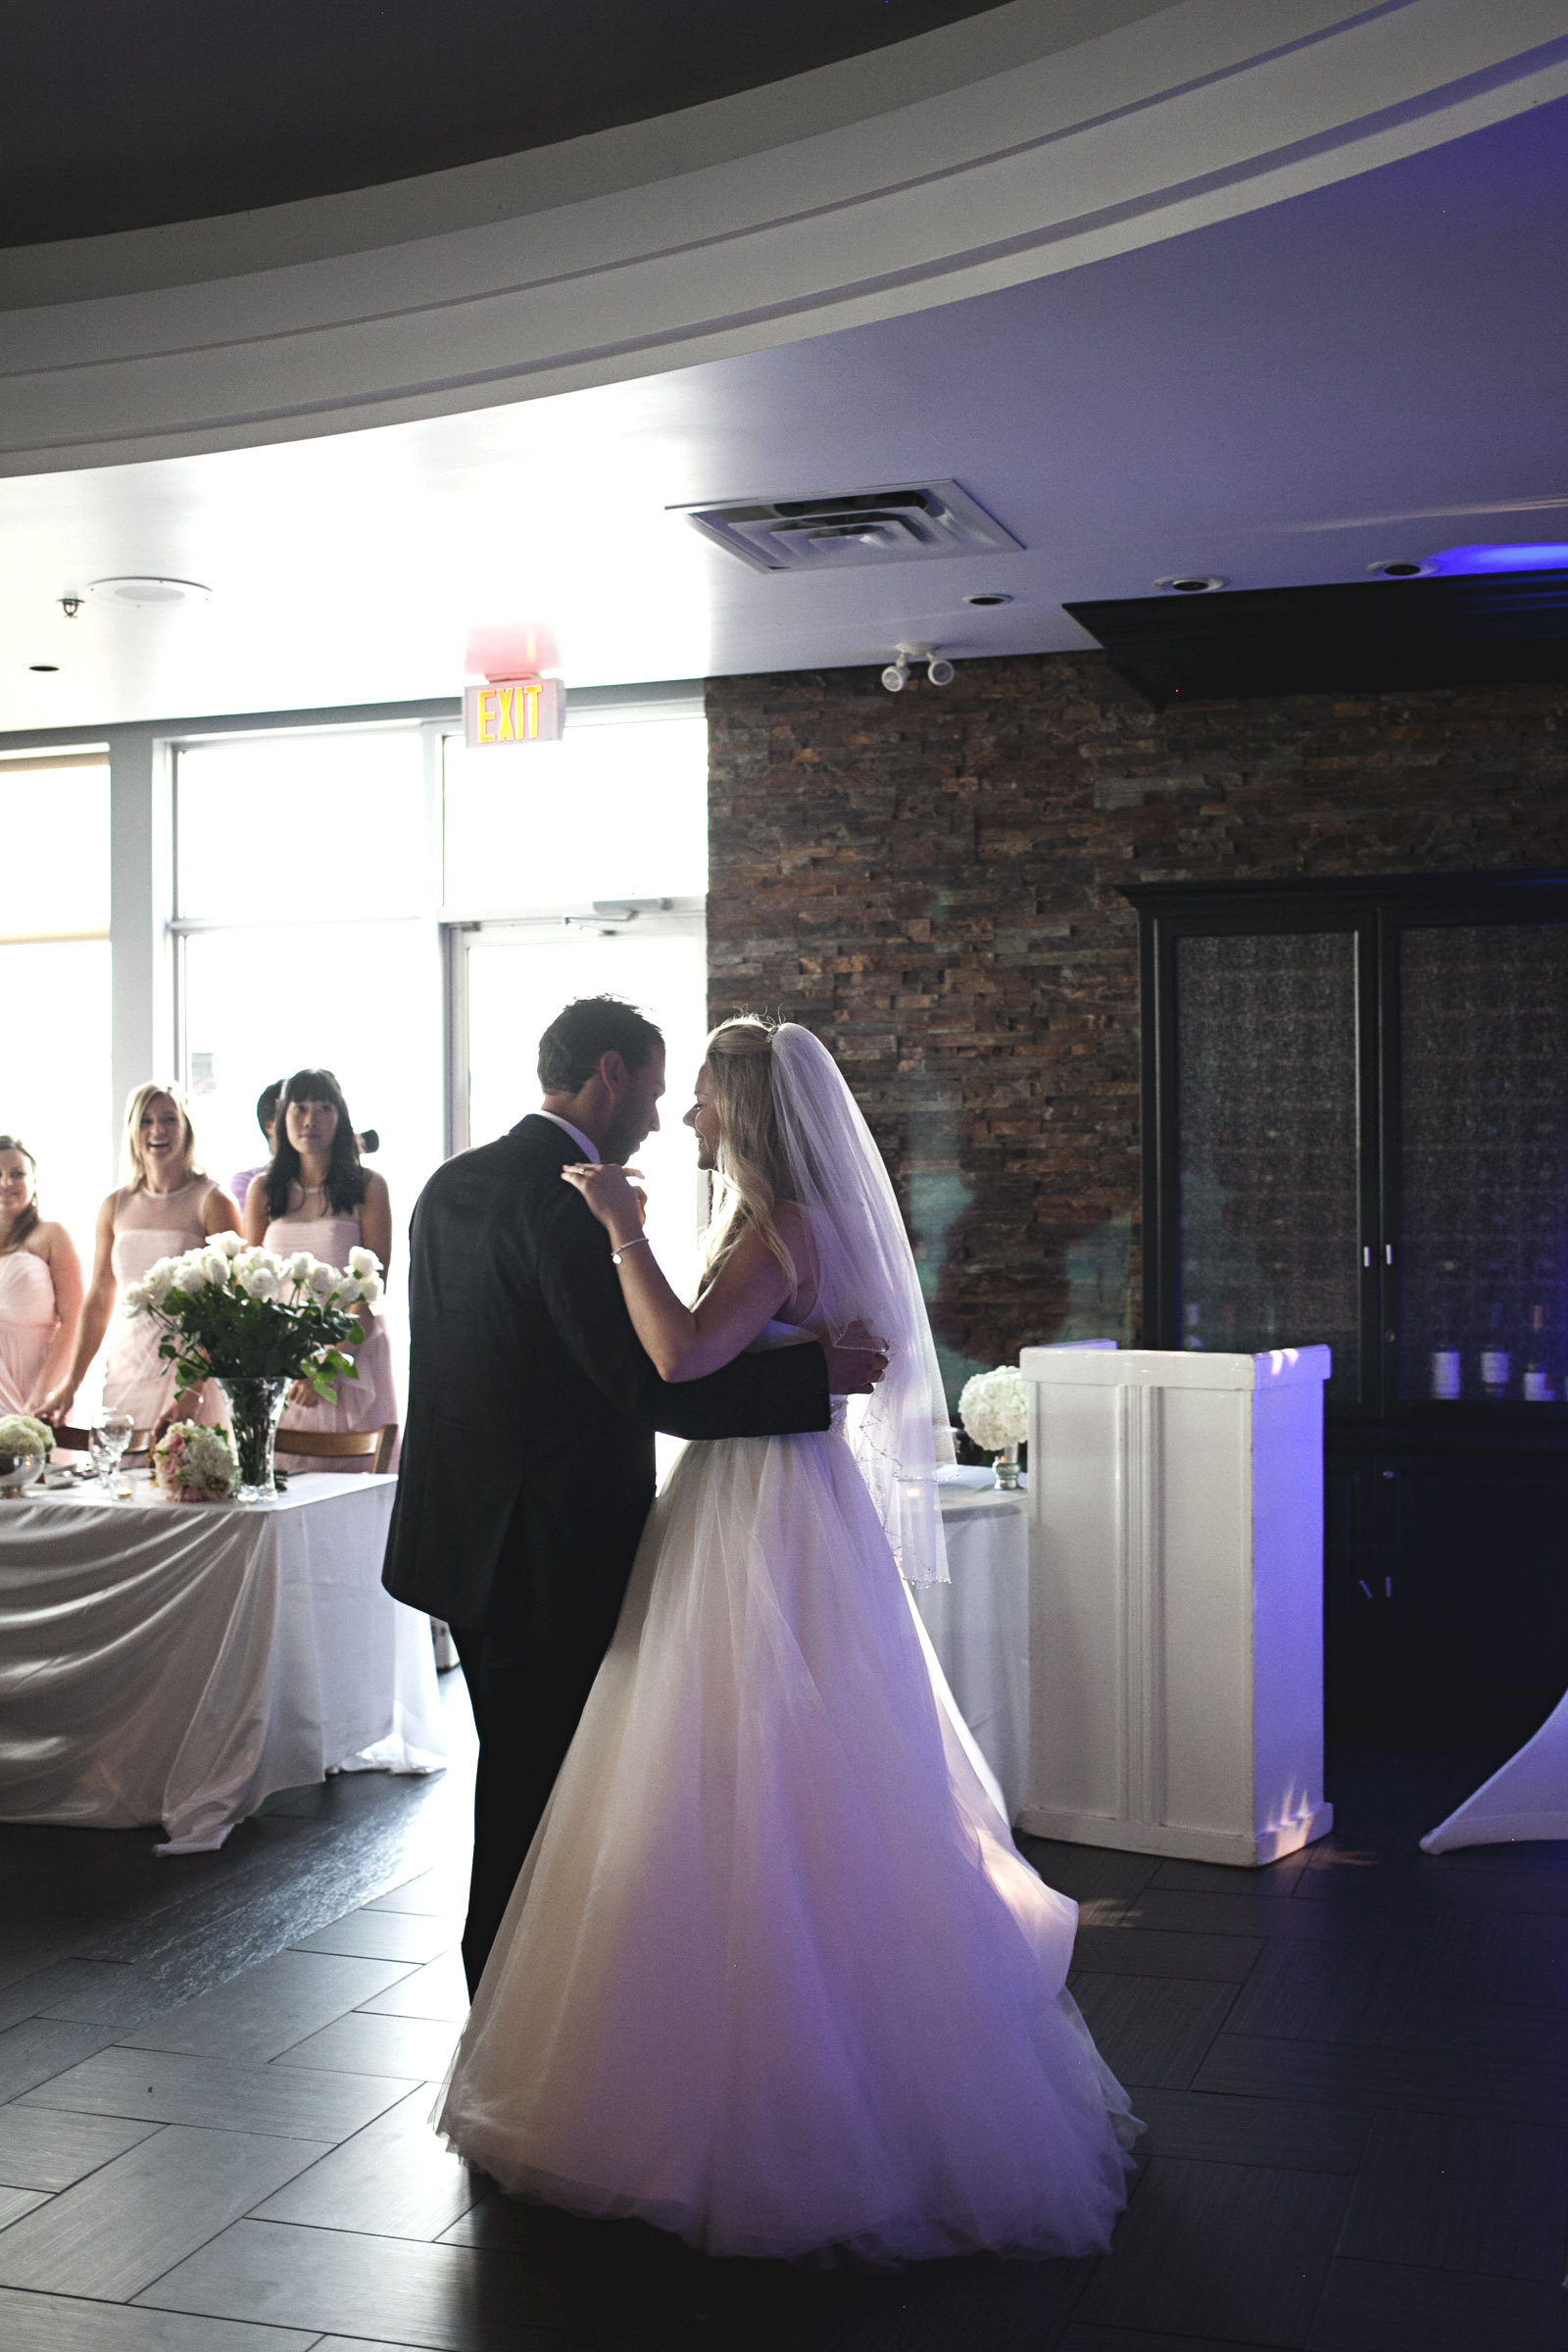 Couple's first dance at Compass Restaurant wedding